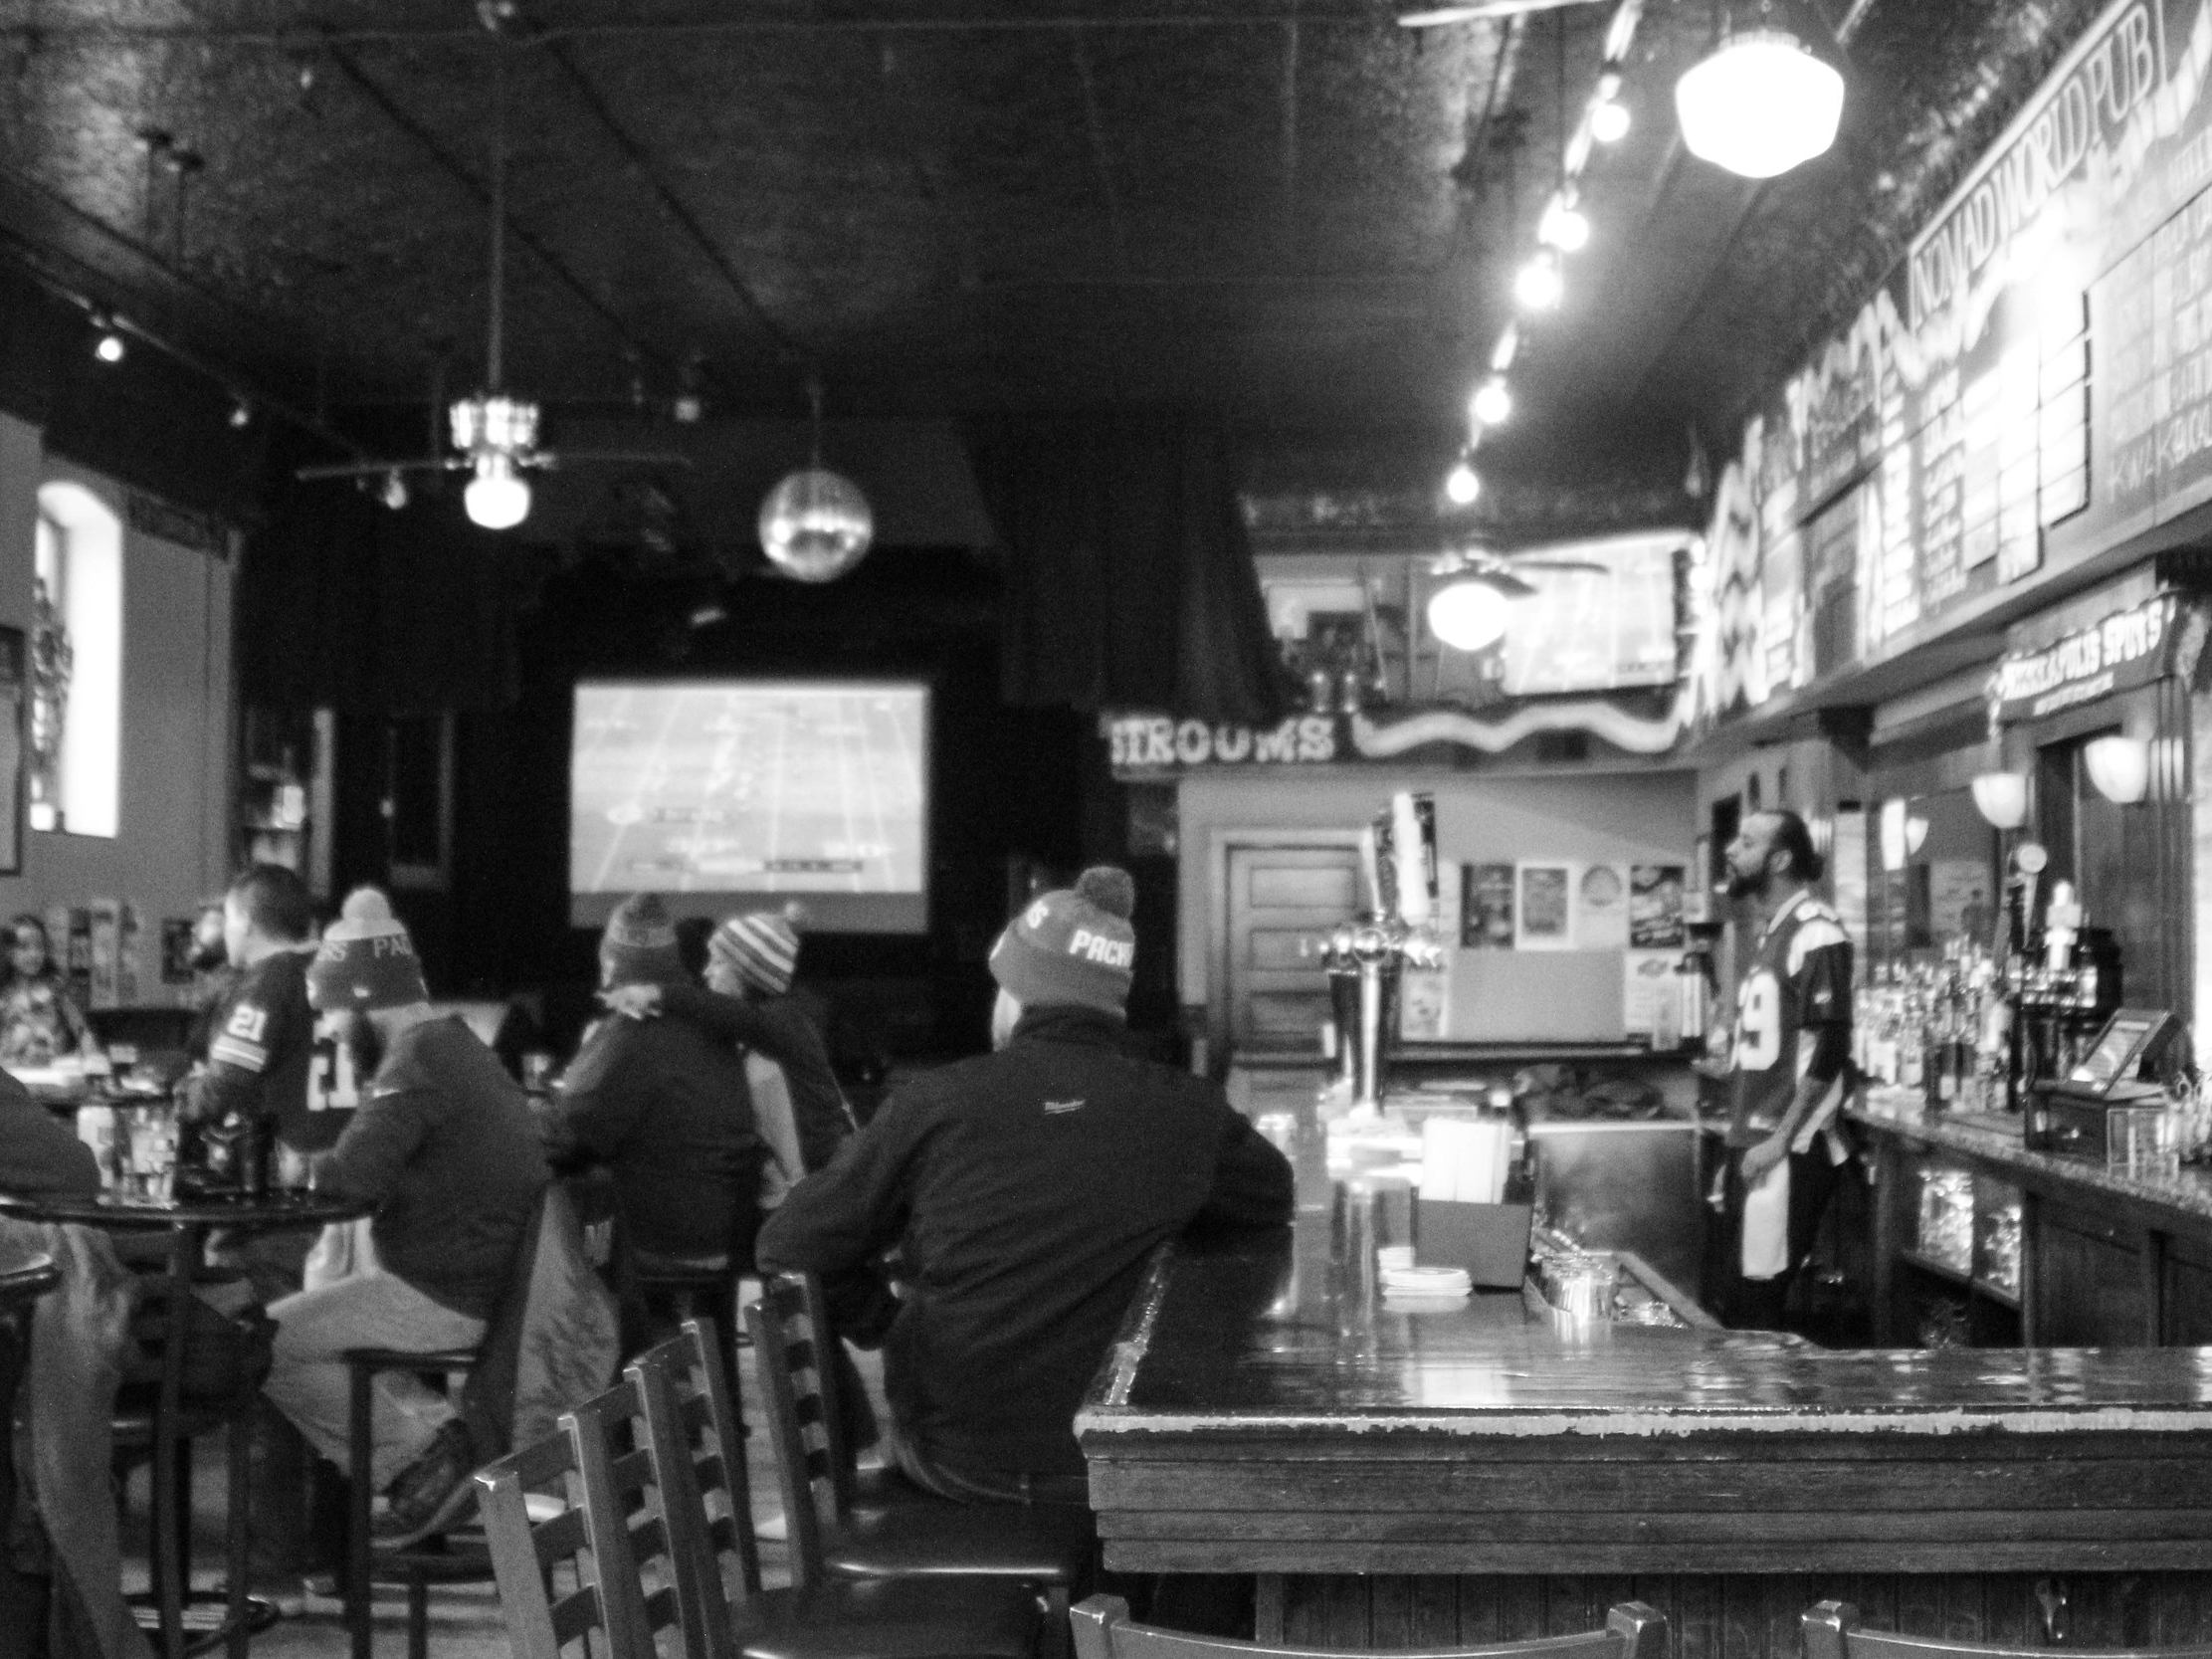 THE BAR - The bar at Nomad World Pub is host to a variety of events including viewing parties, live music, DJs, bocce tournaments, and so much more. With a full bar, patio access, widescreen TVs, and a food truck, the bar is a versatile and creative space perfect for entertaining guests.